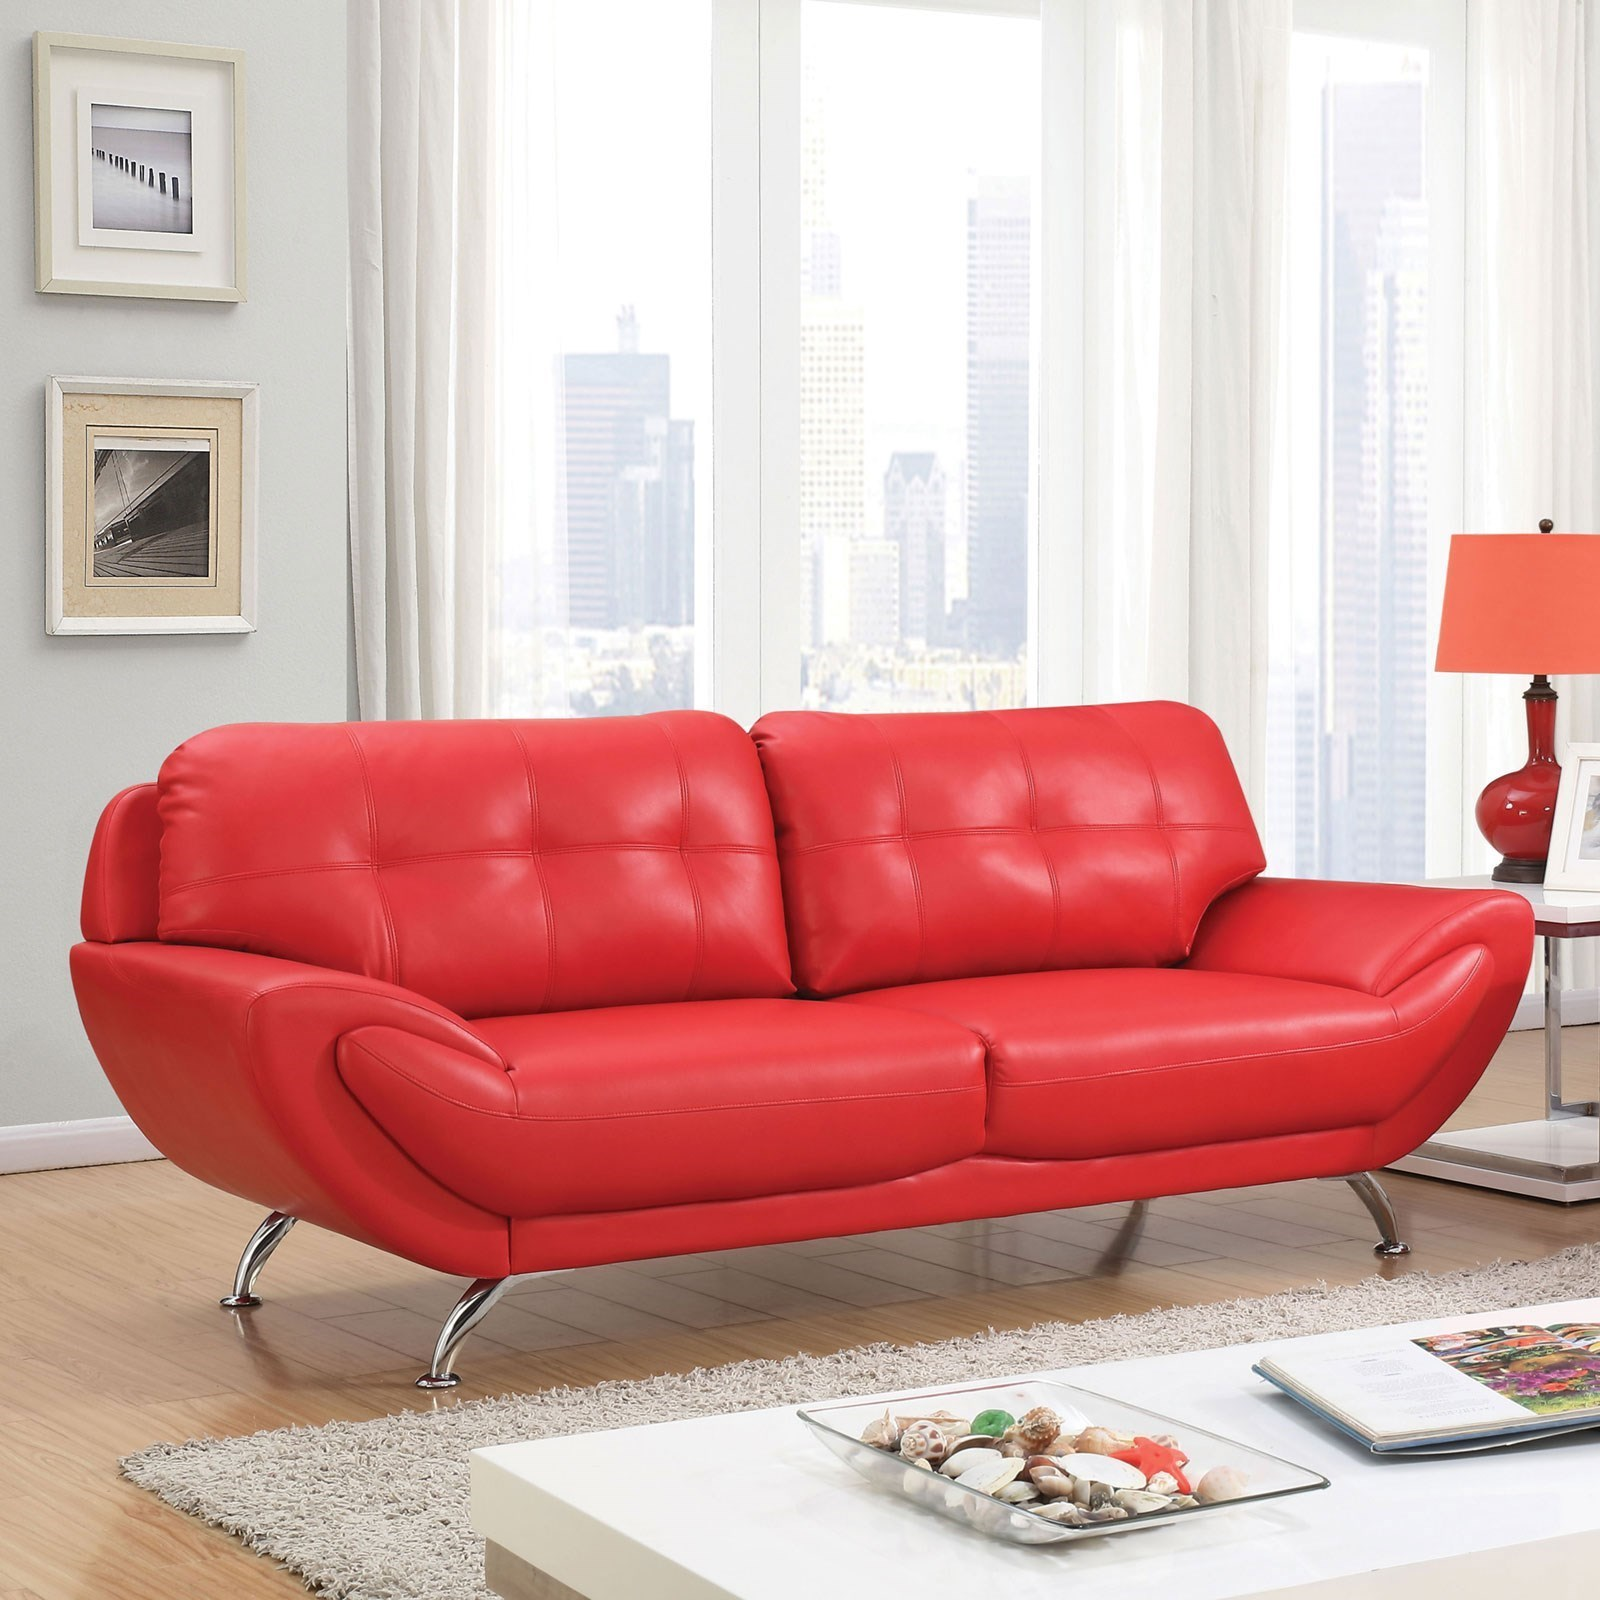 Furniture of America Reanna Contemporary Sofa with Tufted Back ...